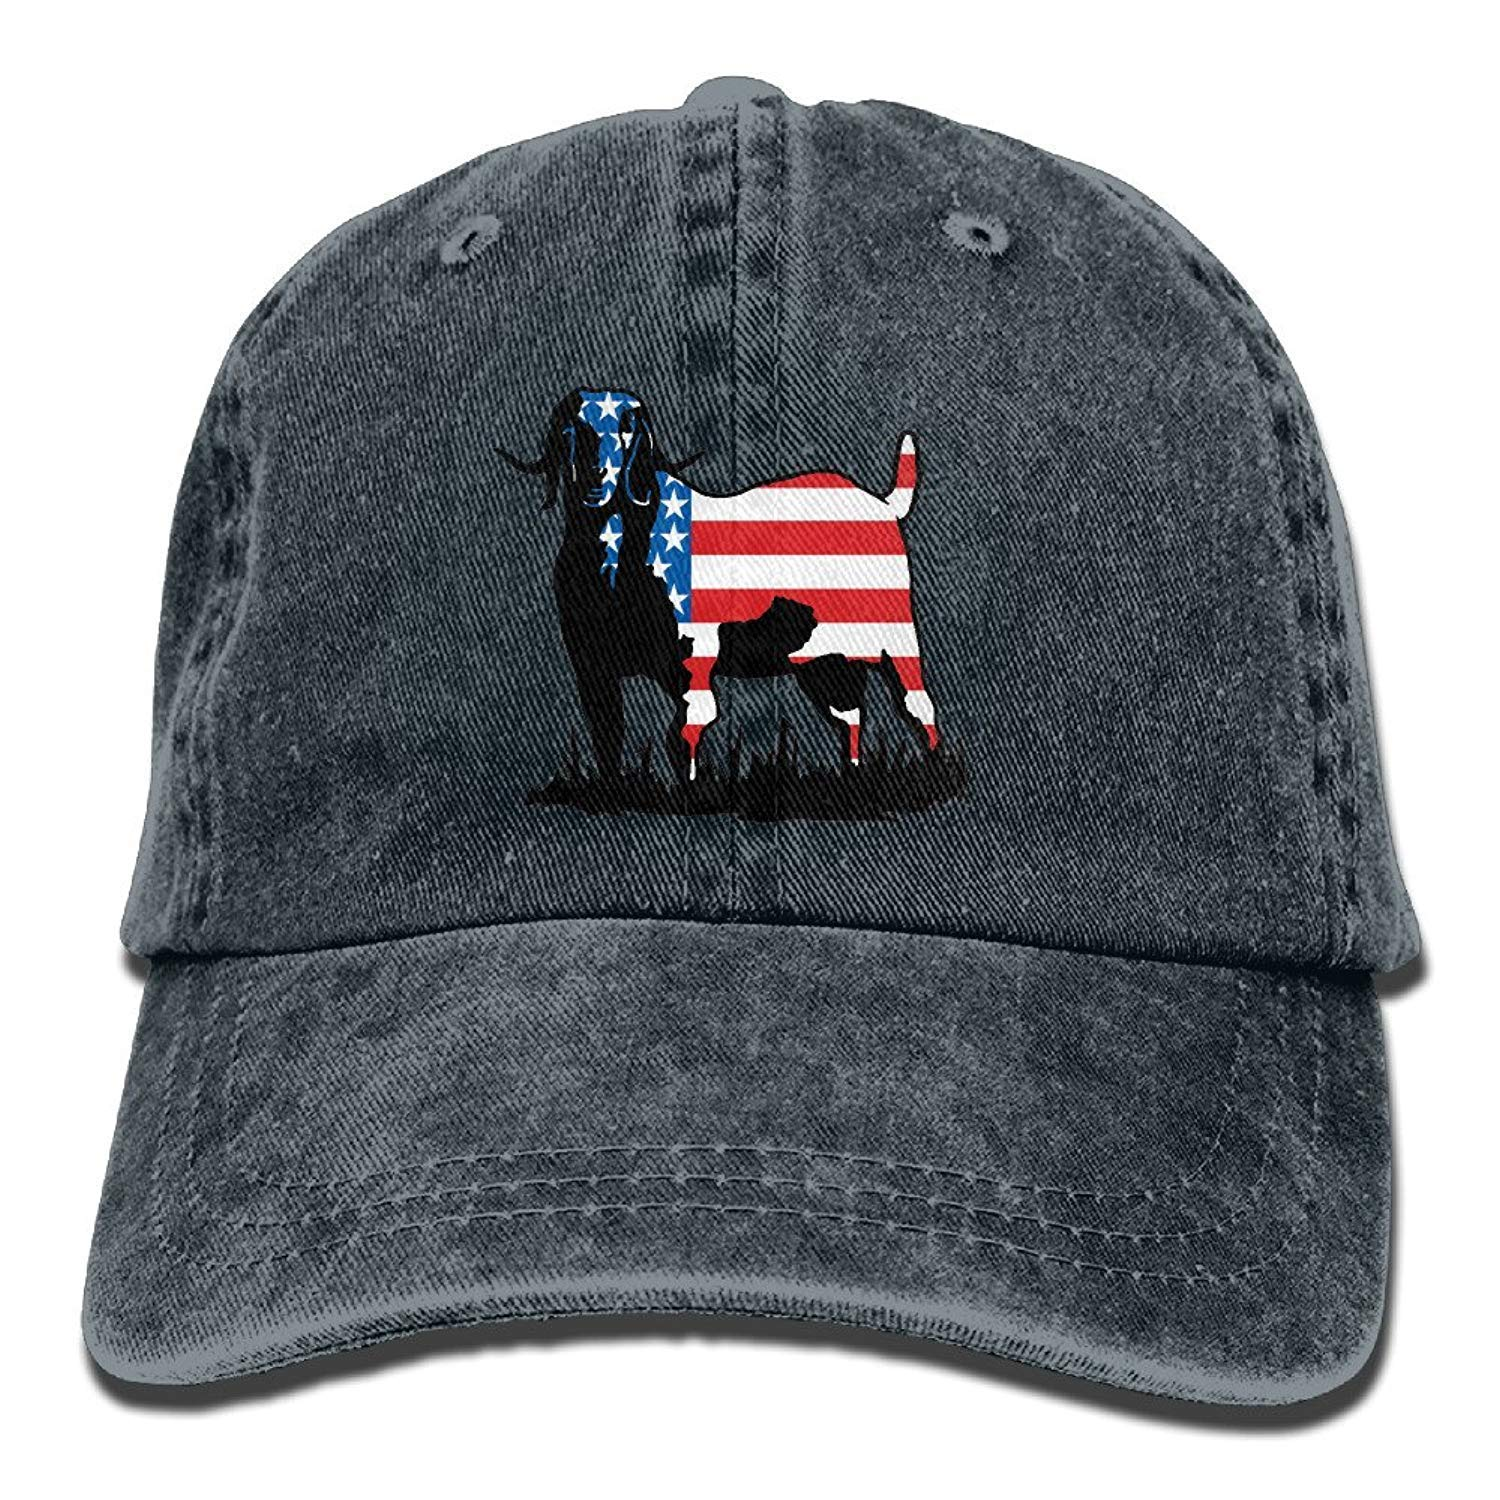 JTRVW Colorrado Boer Goat Flag Vintage Jeans Baseball Cap Outdoor Sports Hat for Men and Women